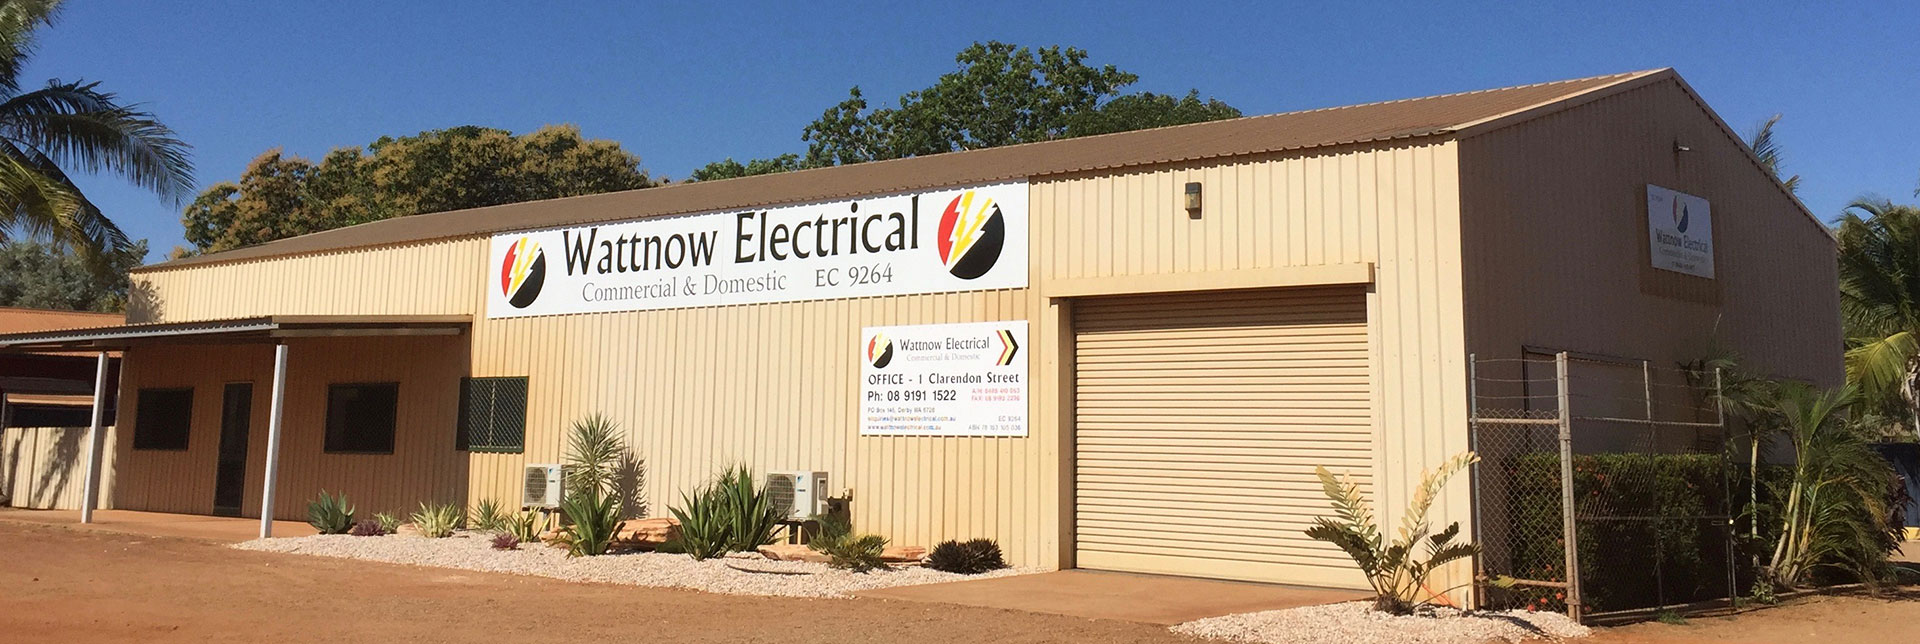 Wattnow-Electrical-Workshop